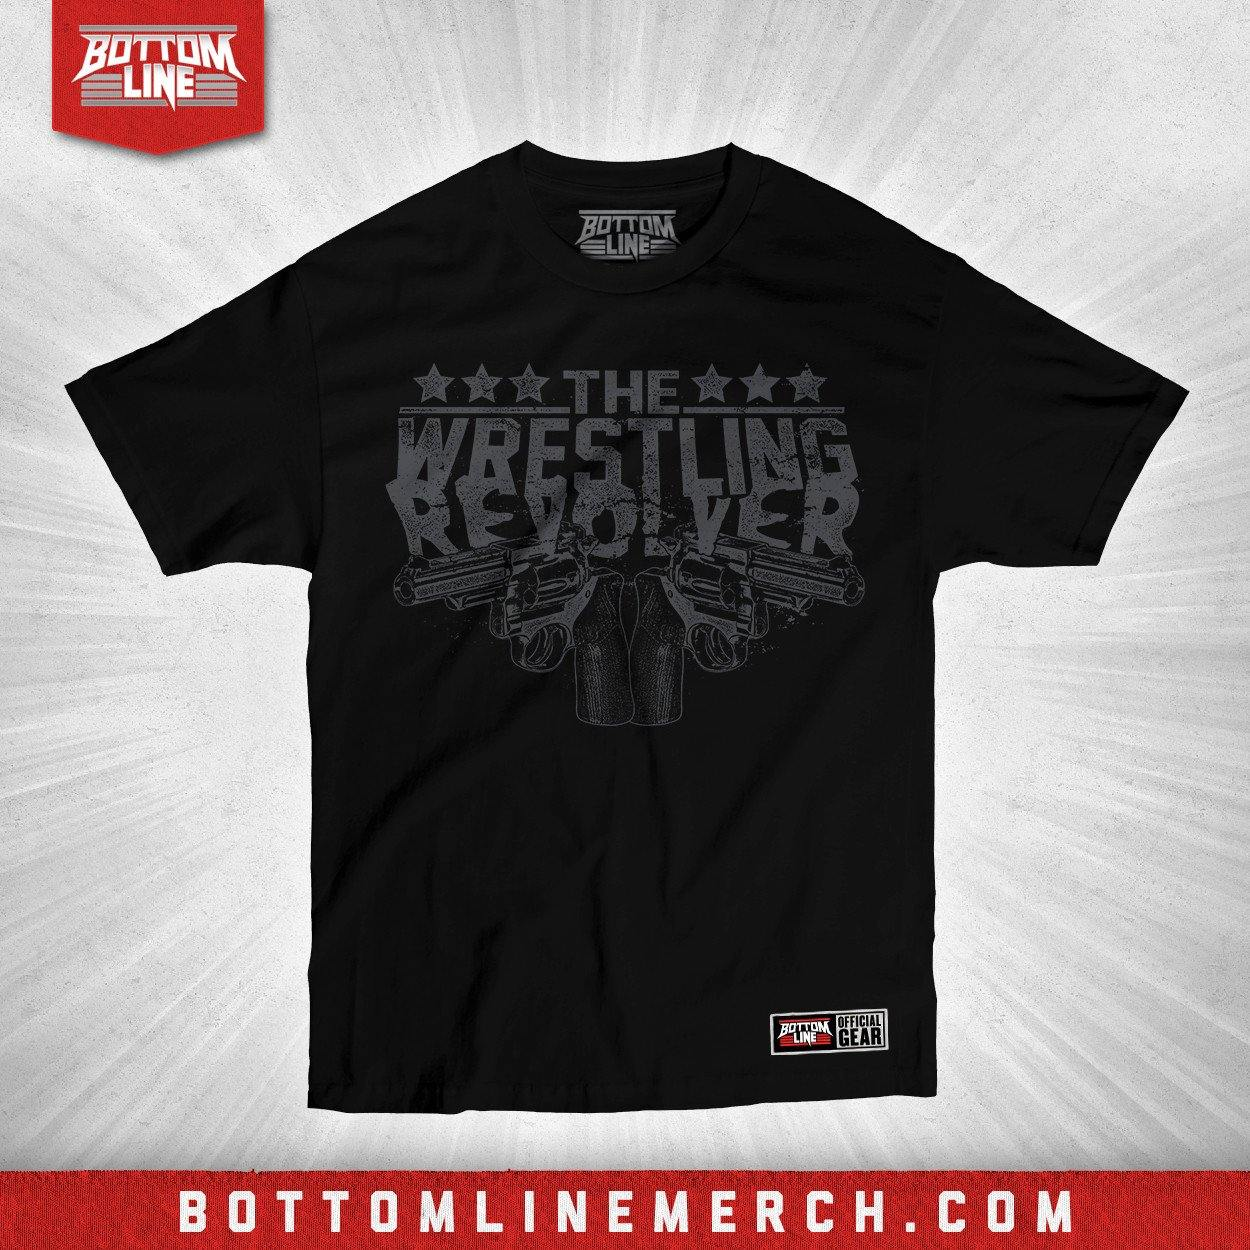 "The Wrestling Revolver ""Revolvers"" Shirt"